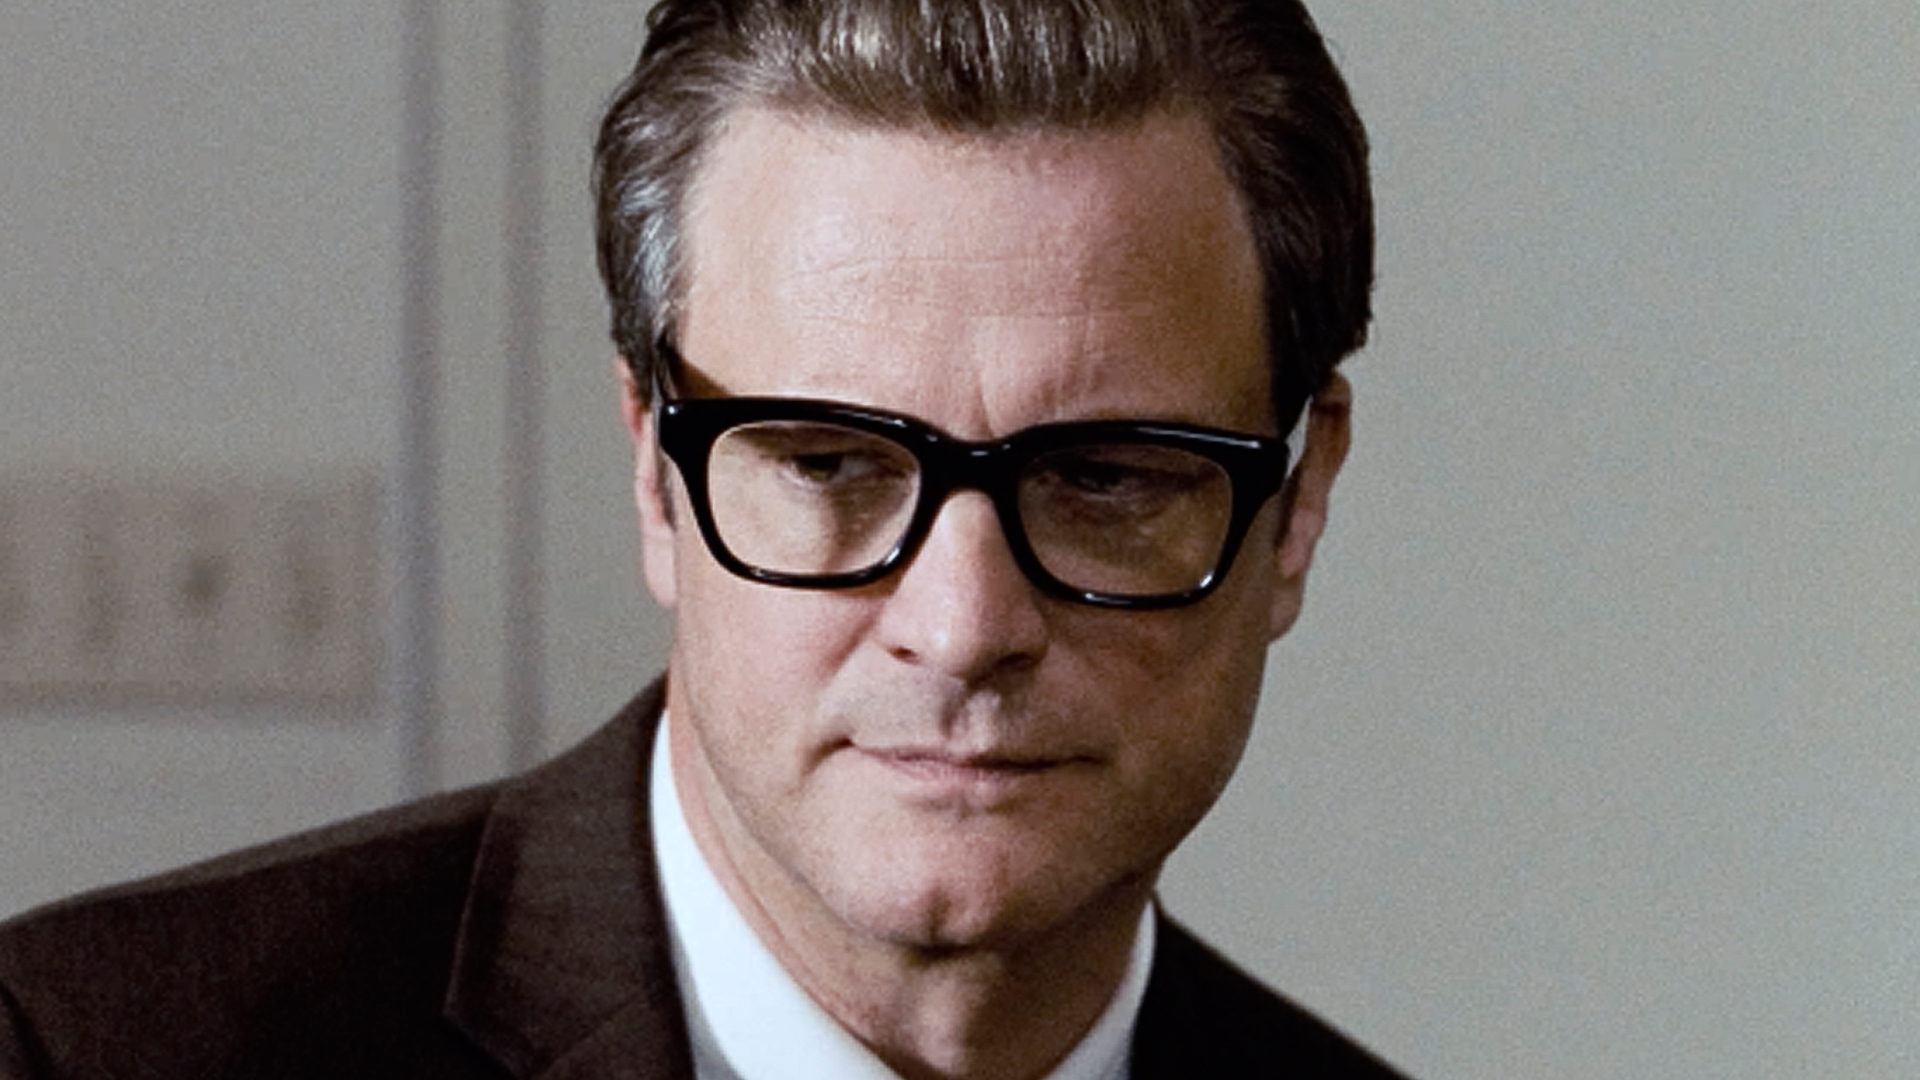 You can browse and download all these carefully picked HD Colin Firth Wallpapers for the screens of your desktops, laptops, netbooks, tablets and mobile ...